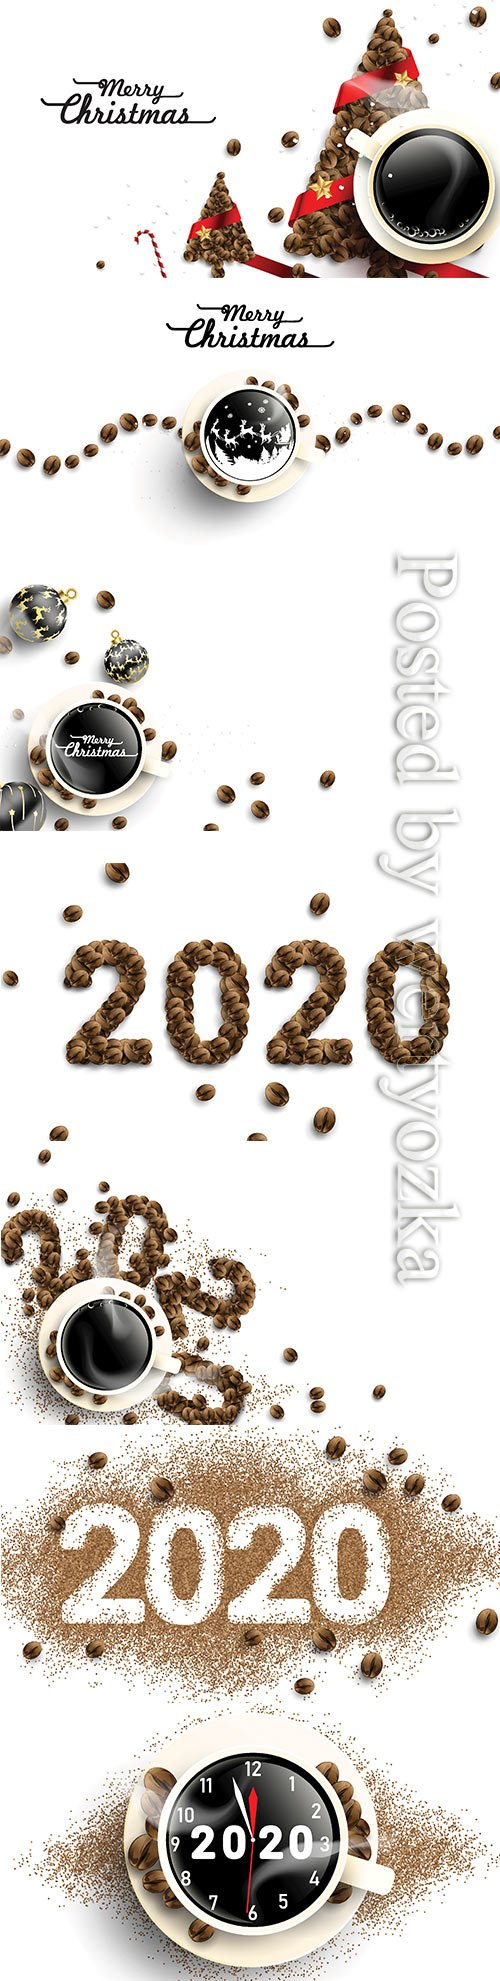 2020 coffee beans text number design, cup of hot coffee with